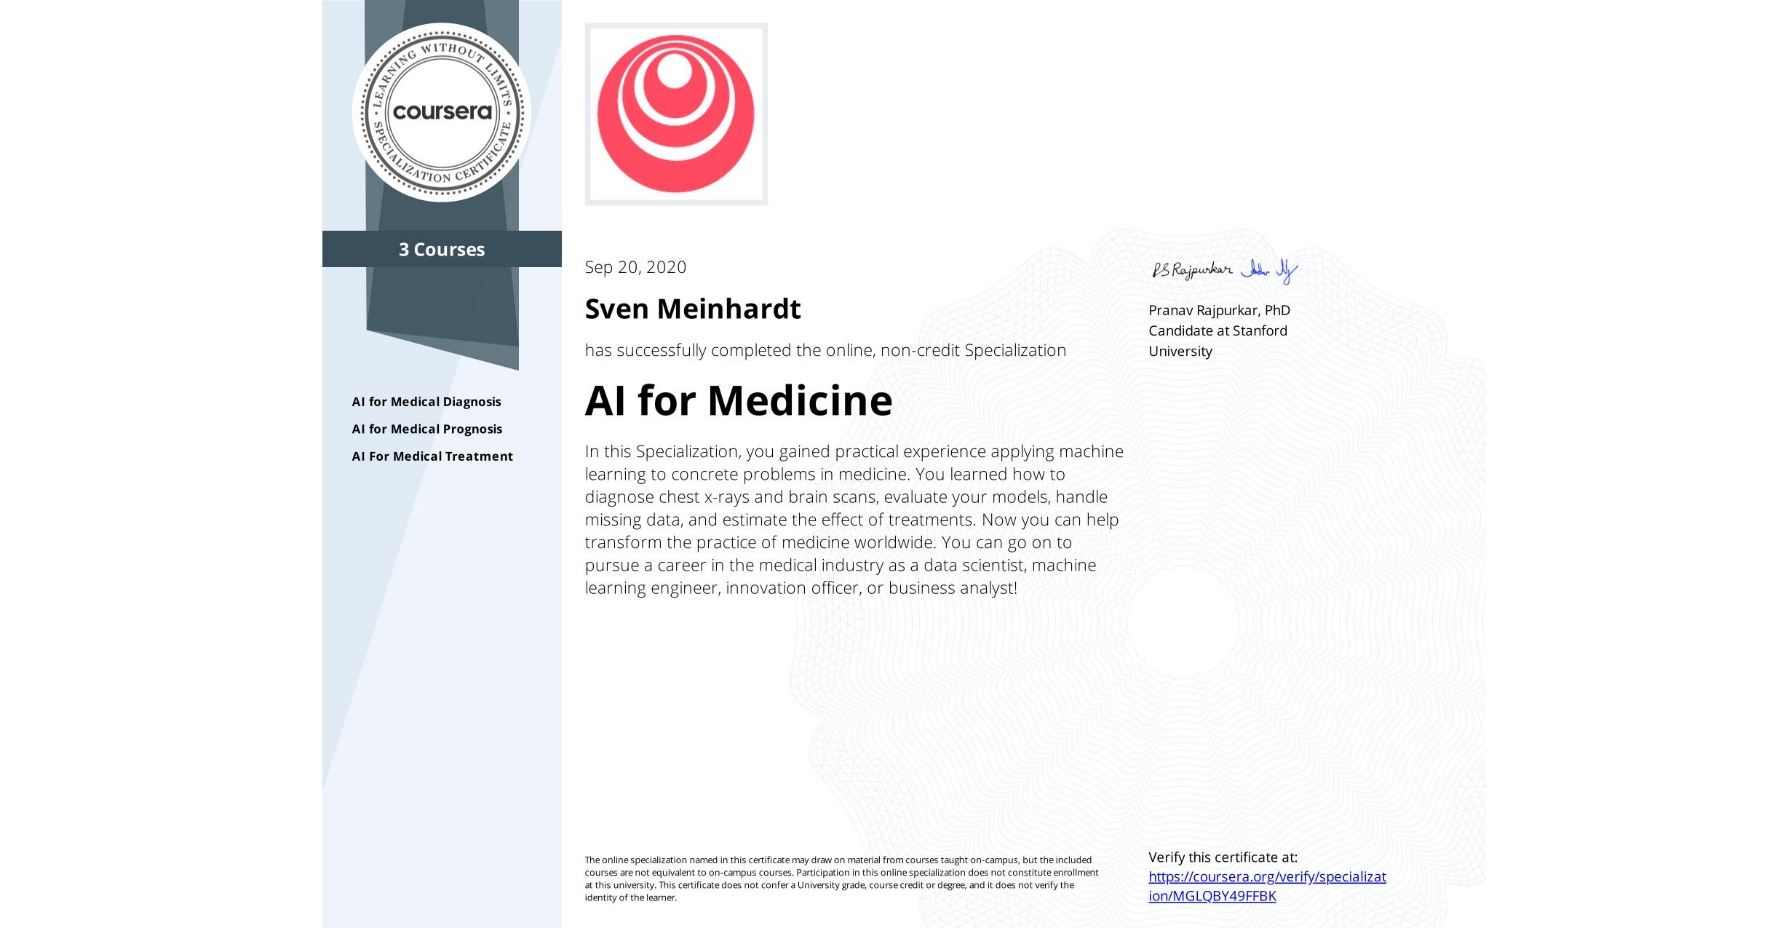 View certificate for Sven Meinhardt, AI for Medicine, offered through Coursera. In this Specialization, you gained practical experience applying machine learning to concrete problems in medicine. You learned how to diagnose chest x-rays and brain scans, evaluate your models, handle missing data, and estimate the effect of treatments.   Now you can help transform the practice of medicine worldwide. You can go on to pursue a career in the medical industry as a data scientist, machine learning engineer, innovation officer, or business analyst!